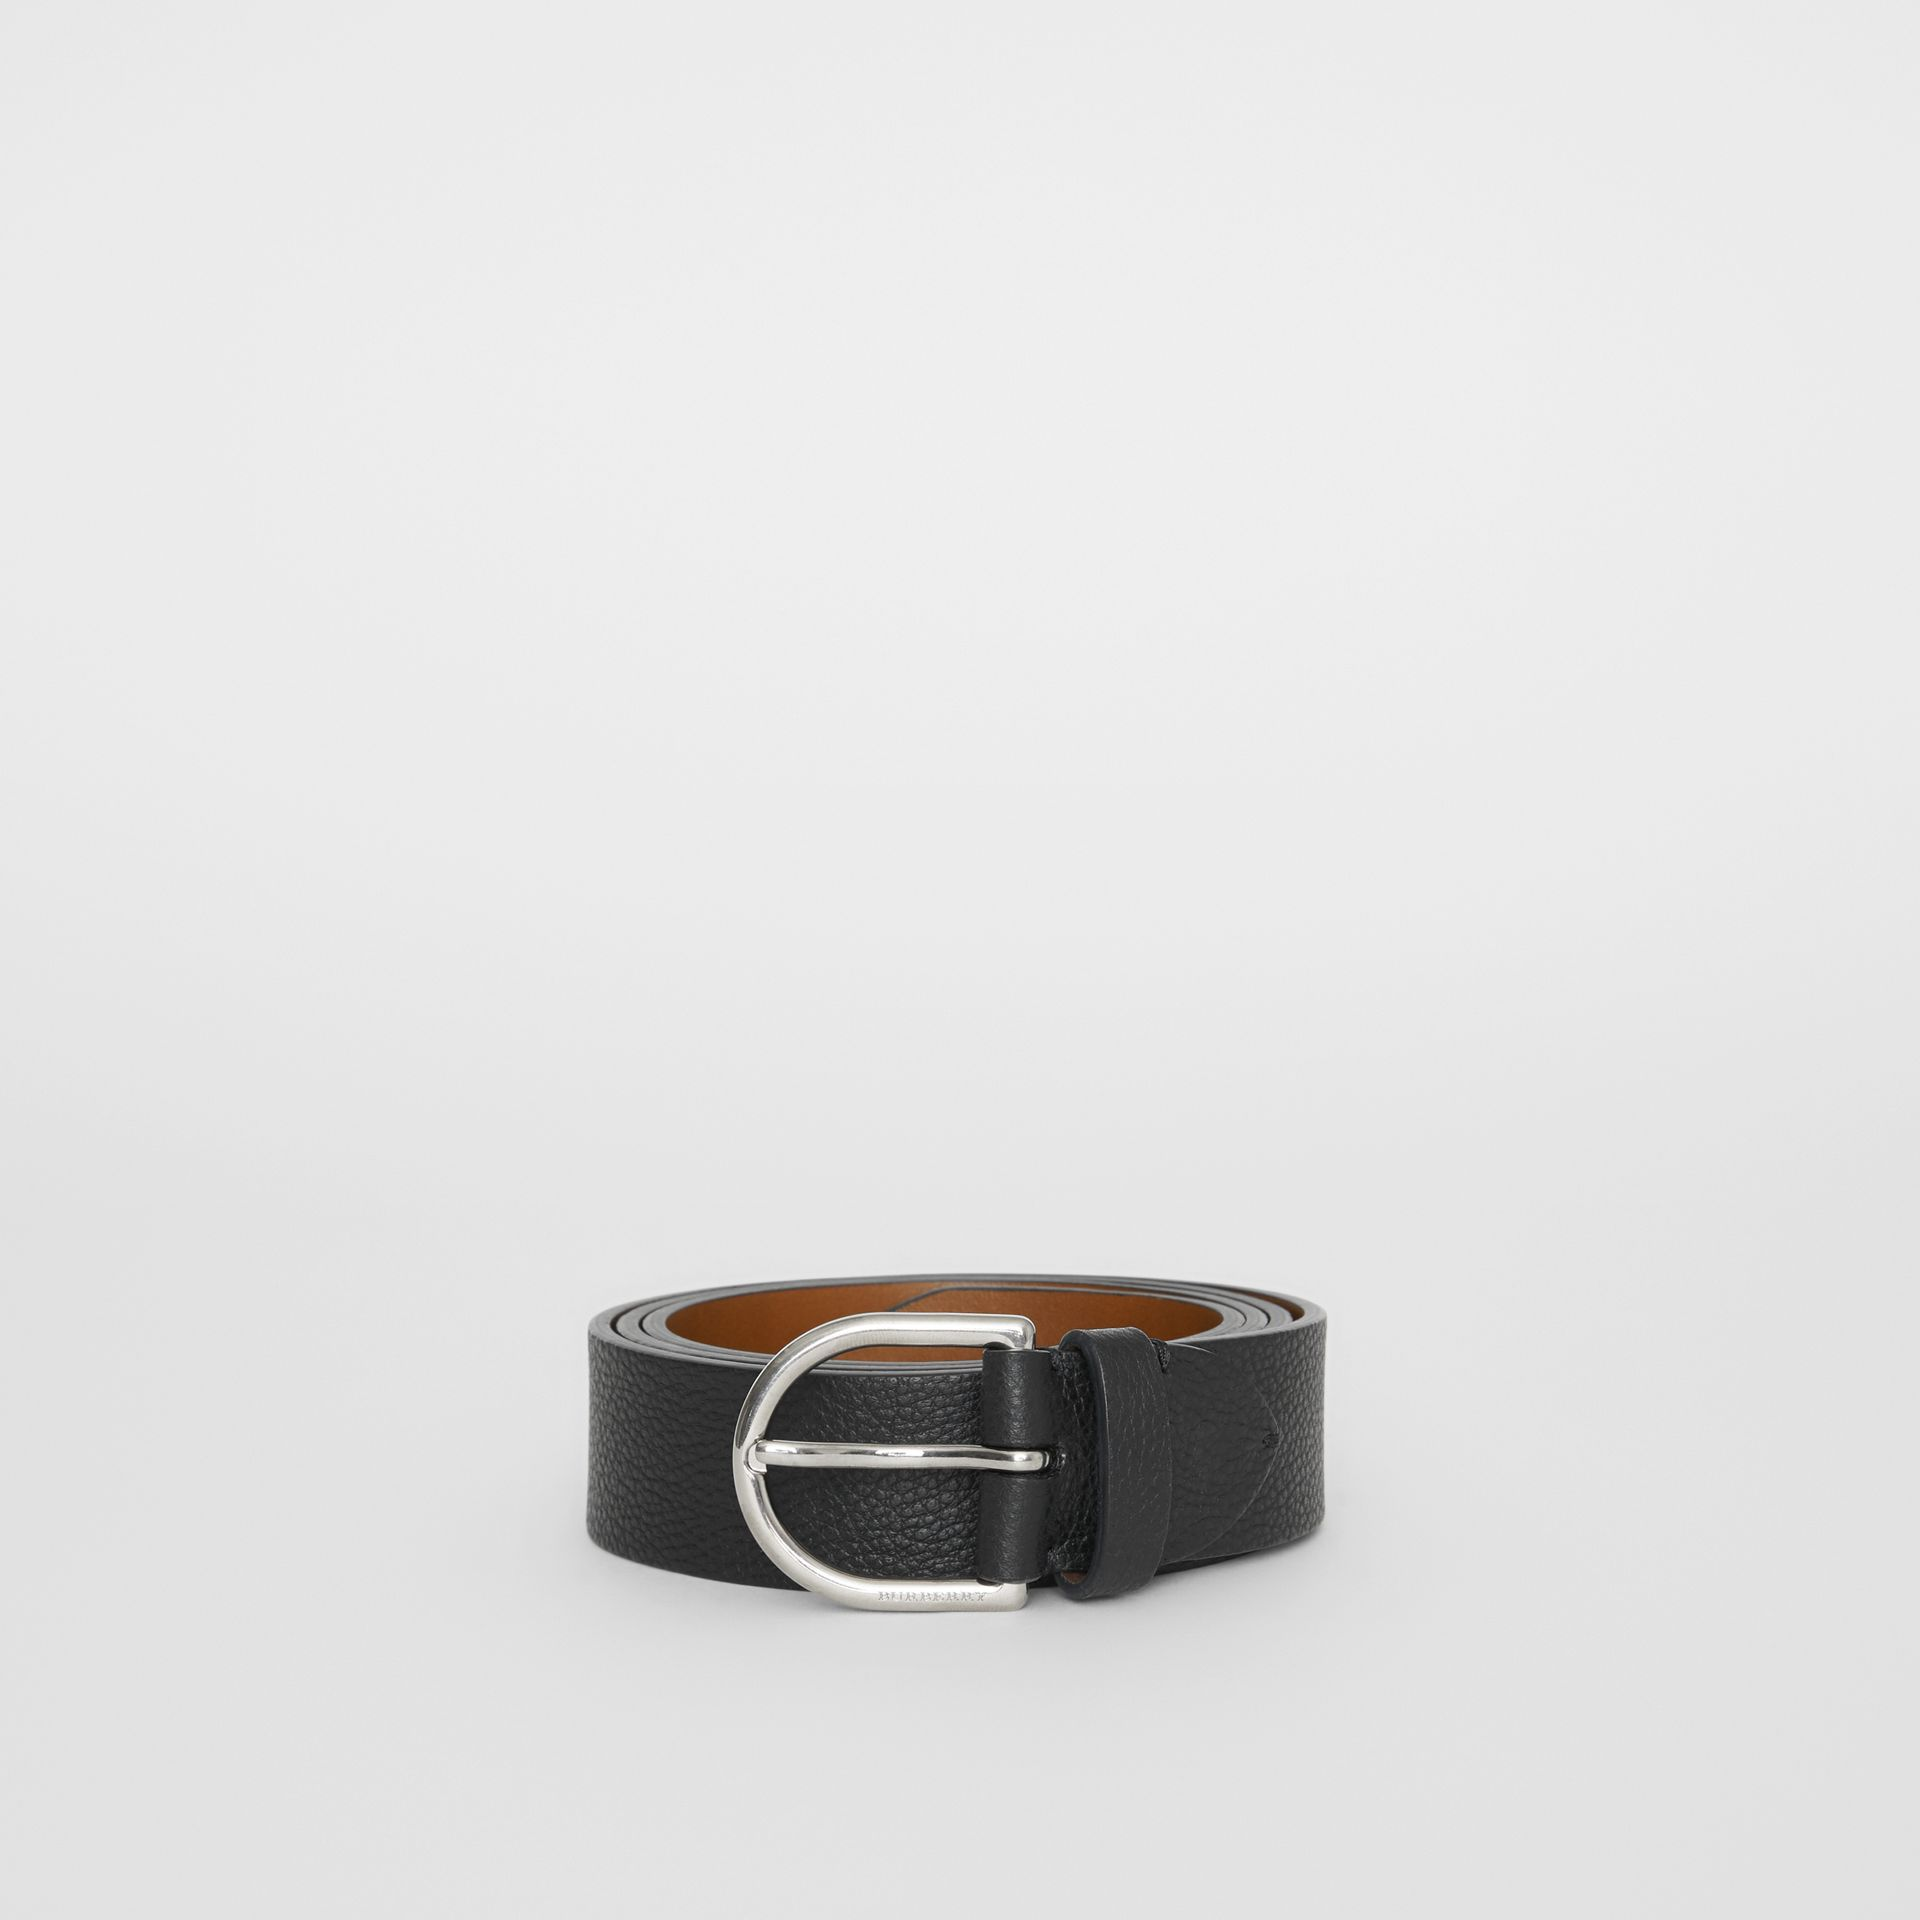 D-shaped Buckle Grainy Leather Belt in Black - Men | Burberry United Kingdom - gallery image 3